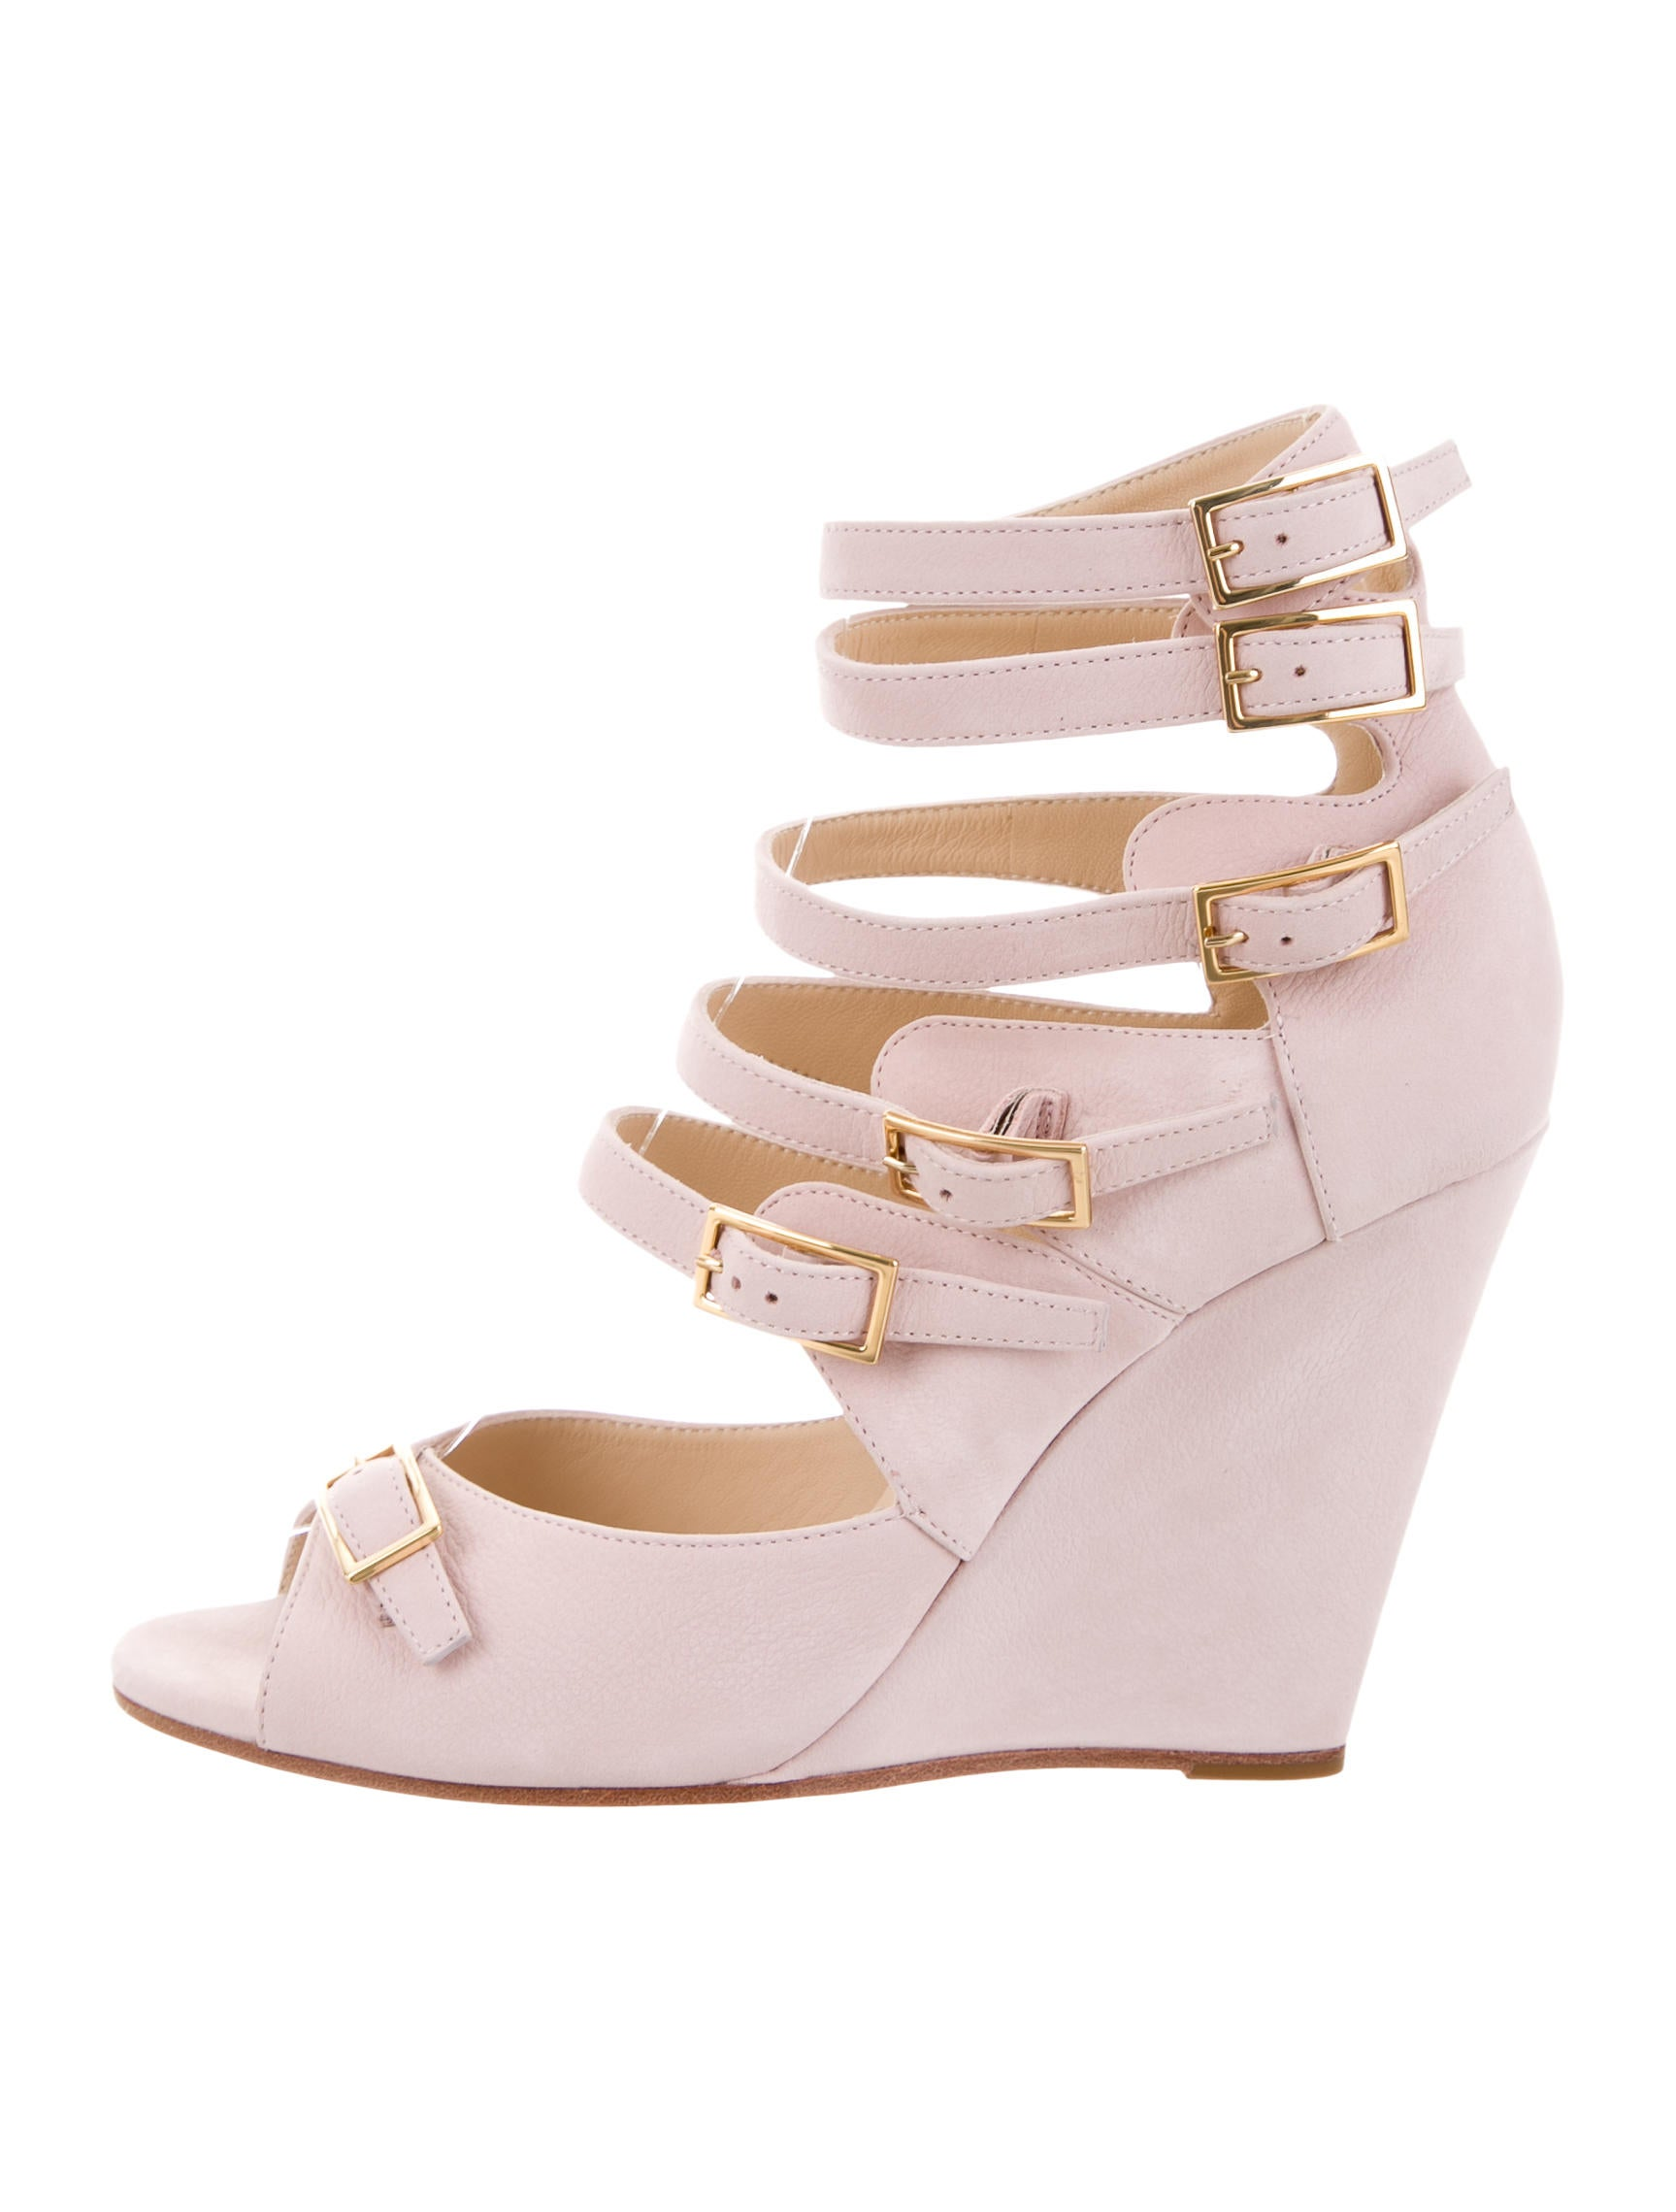 Chloé Multistrap Wedge Pumps w/ Tags